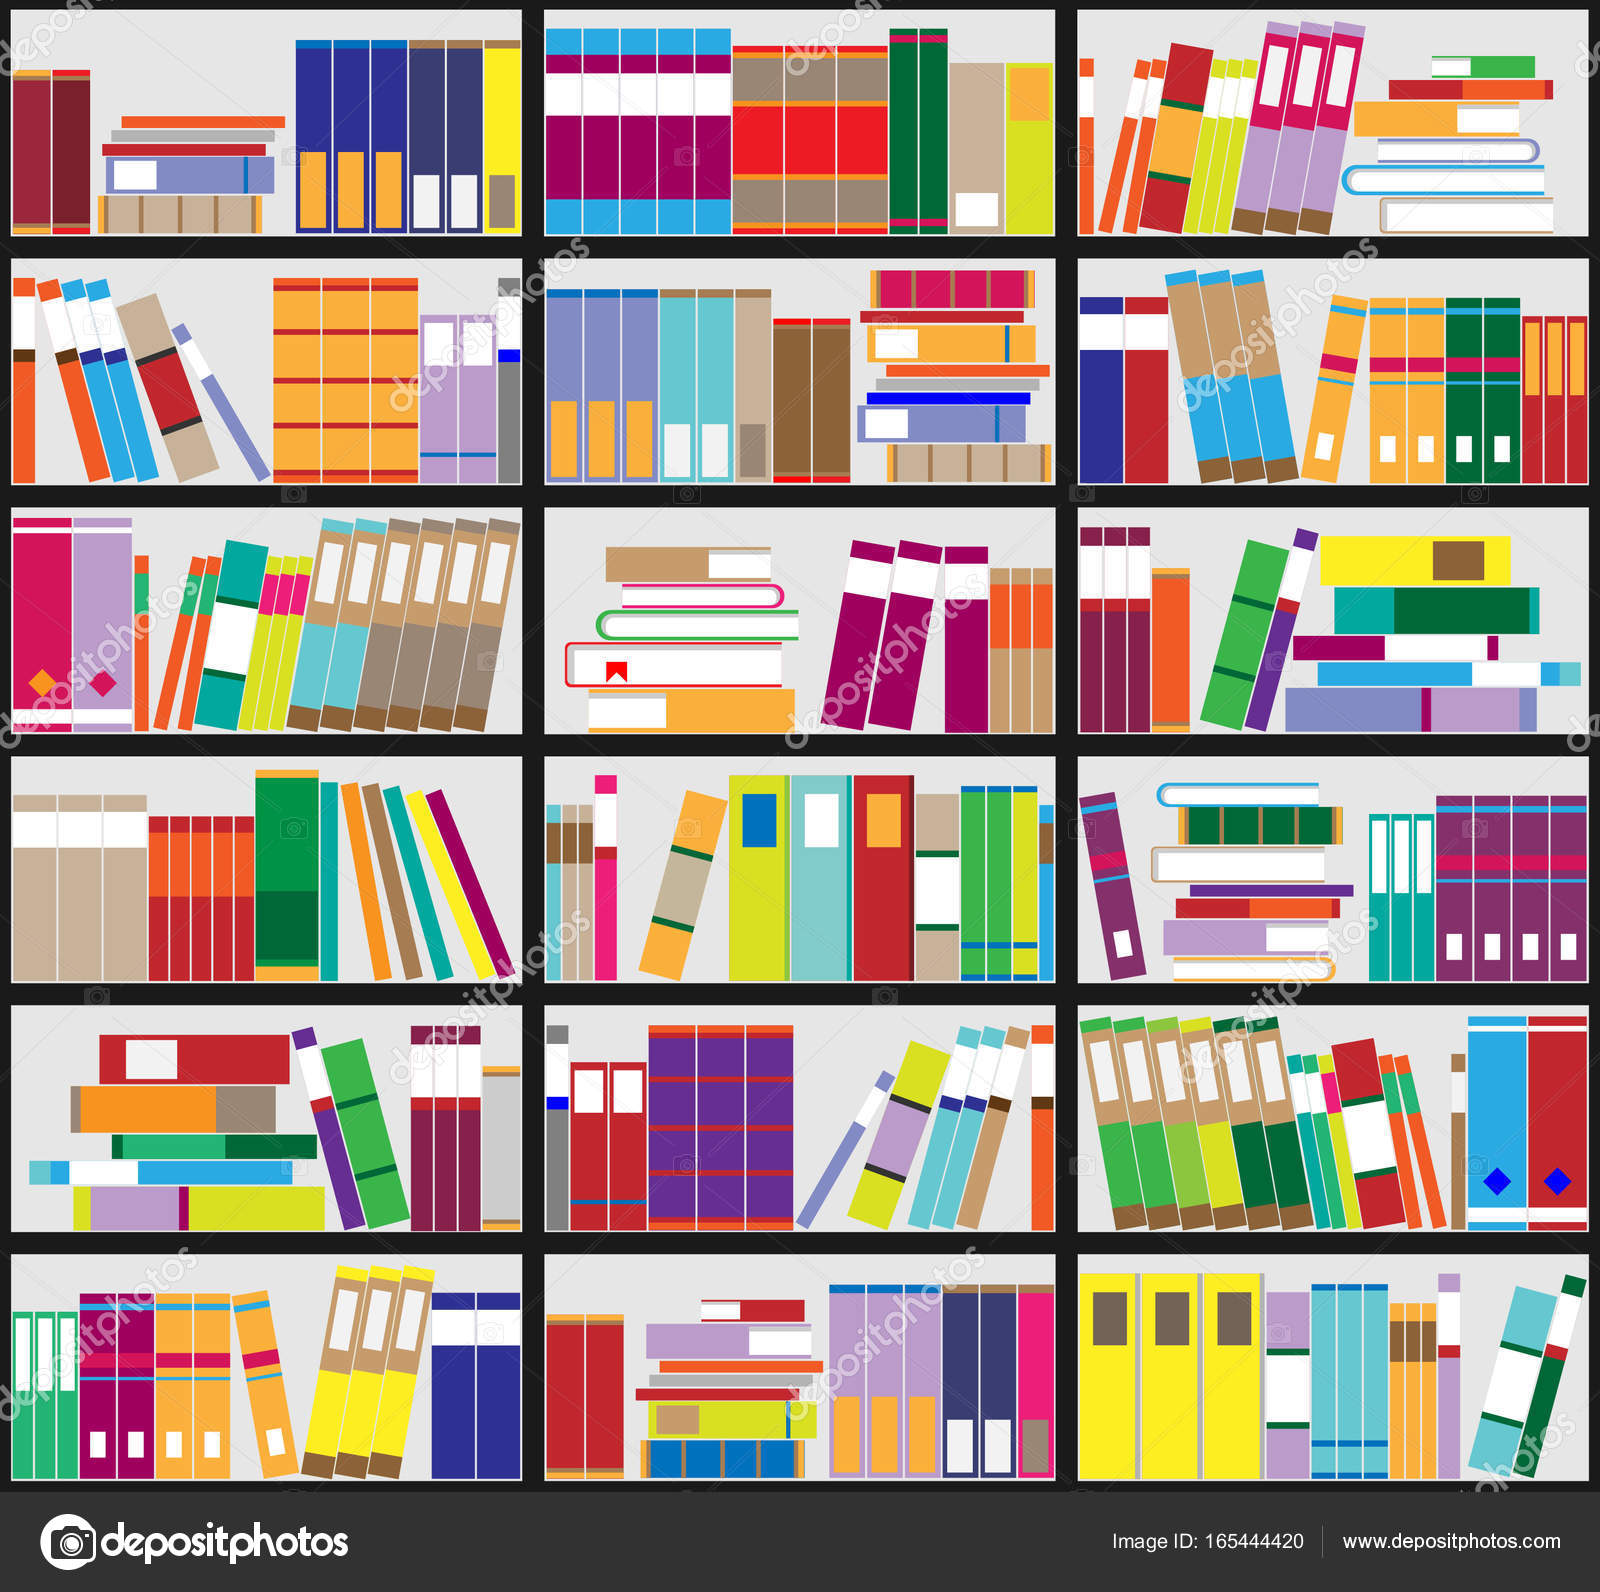 Bookshelf Background Shelves Full Of Colorful Books Home Library With Vector Close Up Illustration Cartoon Design Style By Ann Minsk